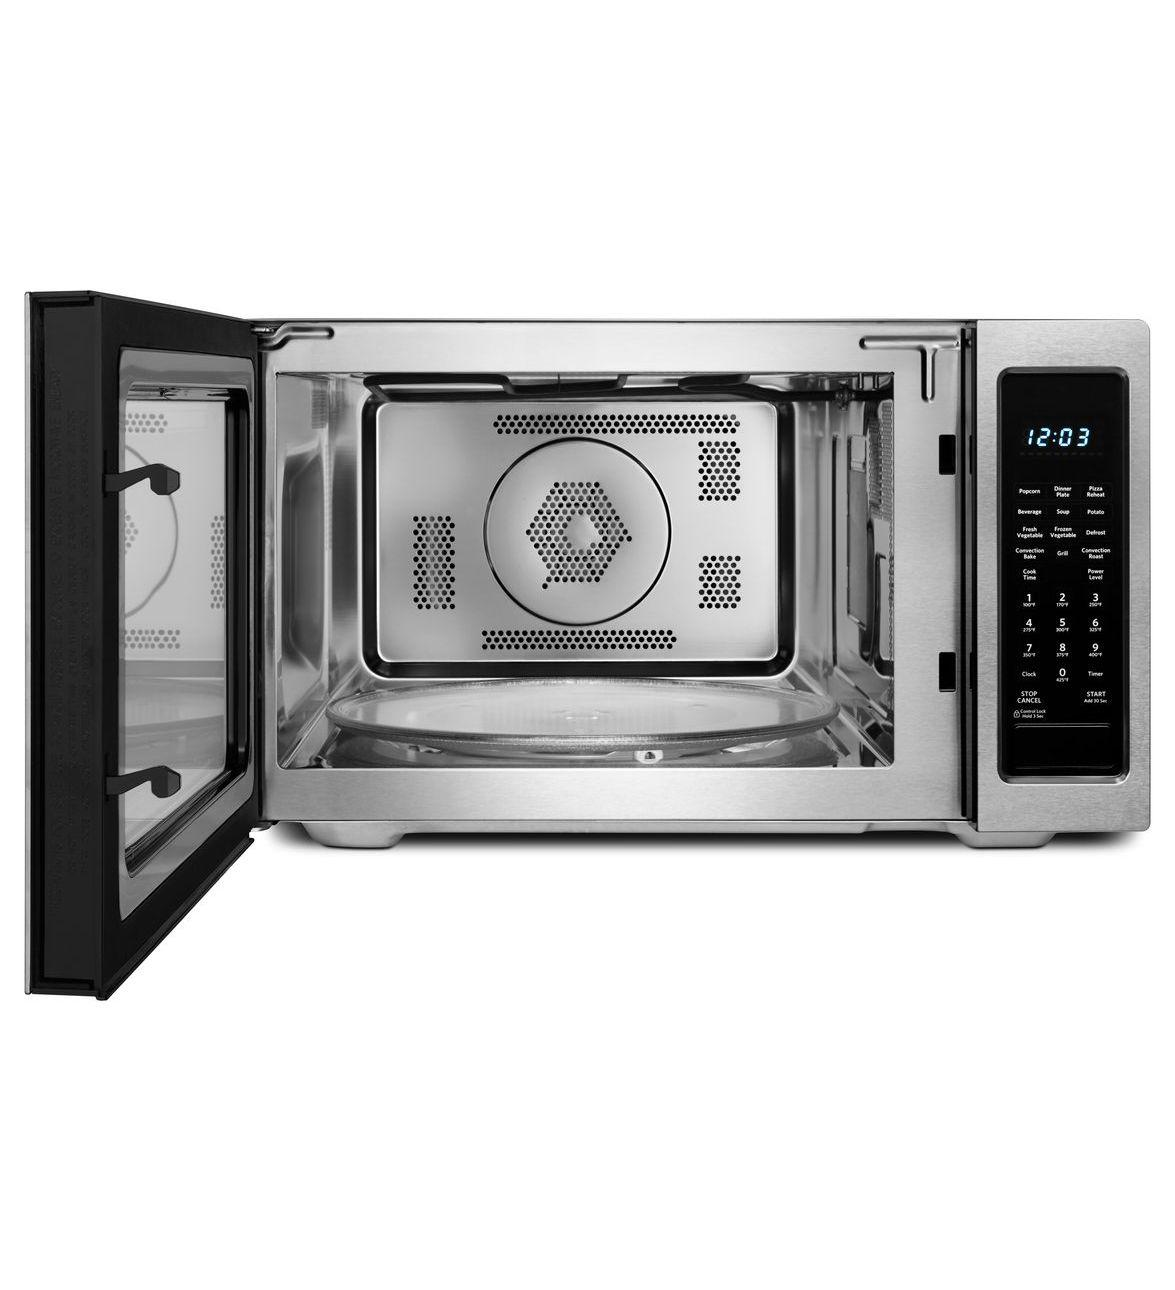 Kitchenaid Kcmc1575bss 1 5 Cu Ft Countertop Microwave